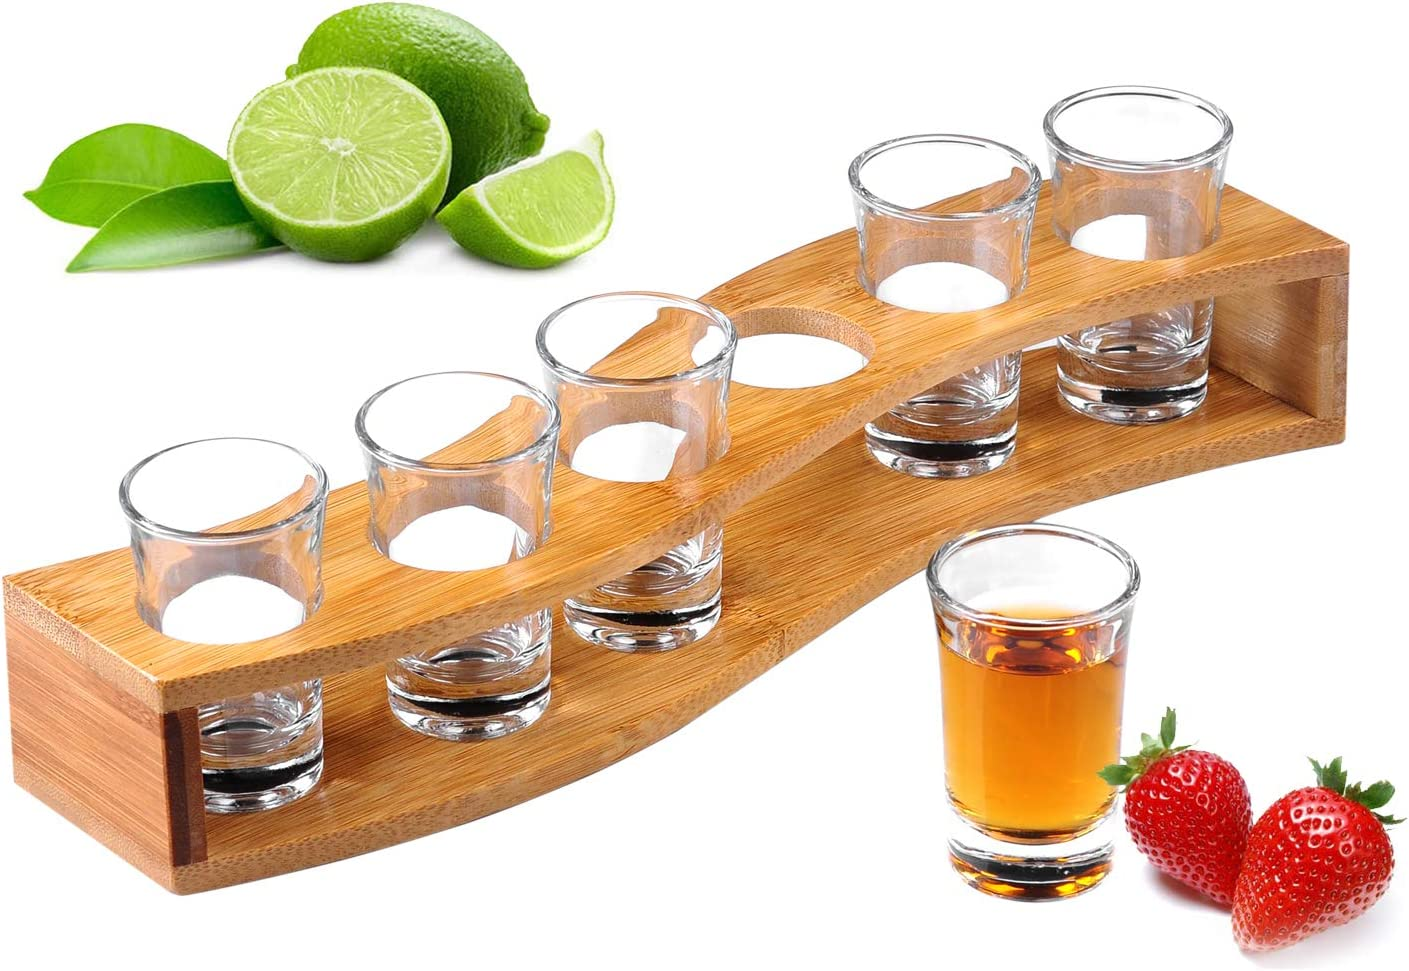 Shot Glasses, Heavy Base Shot Glass Set with Tray - Professional Wooden Holder for Tequila - 6 Shot Glass Serving Set/Shot Glass Holder/Shot Glass Display/Tequila Shot Set